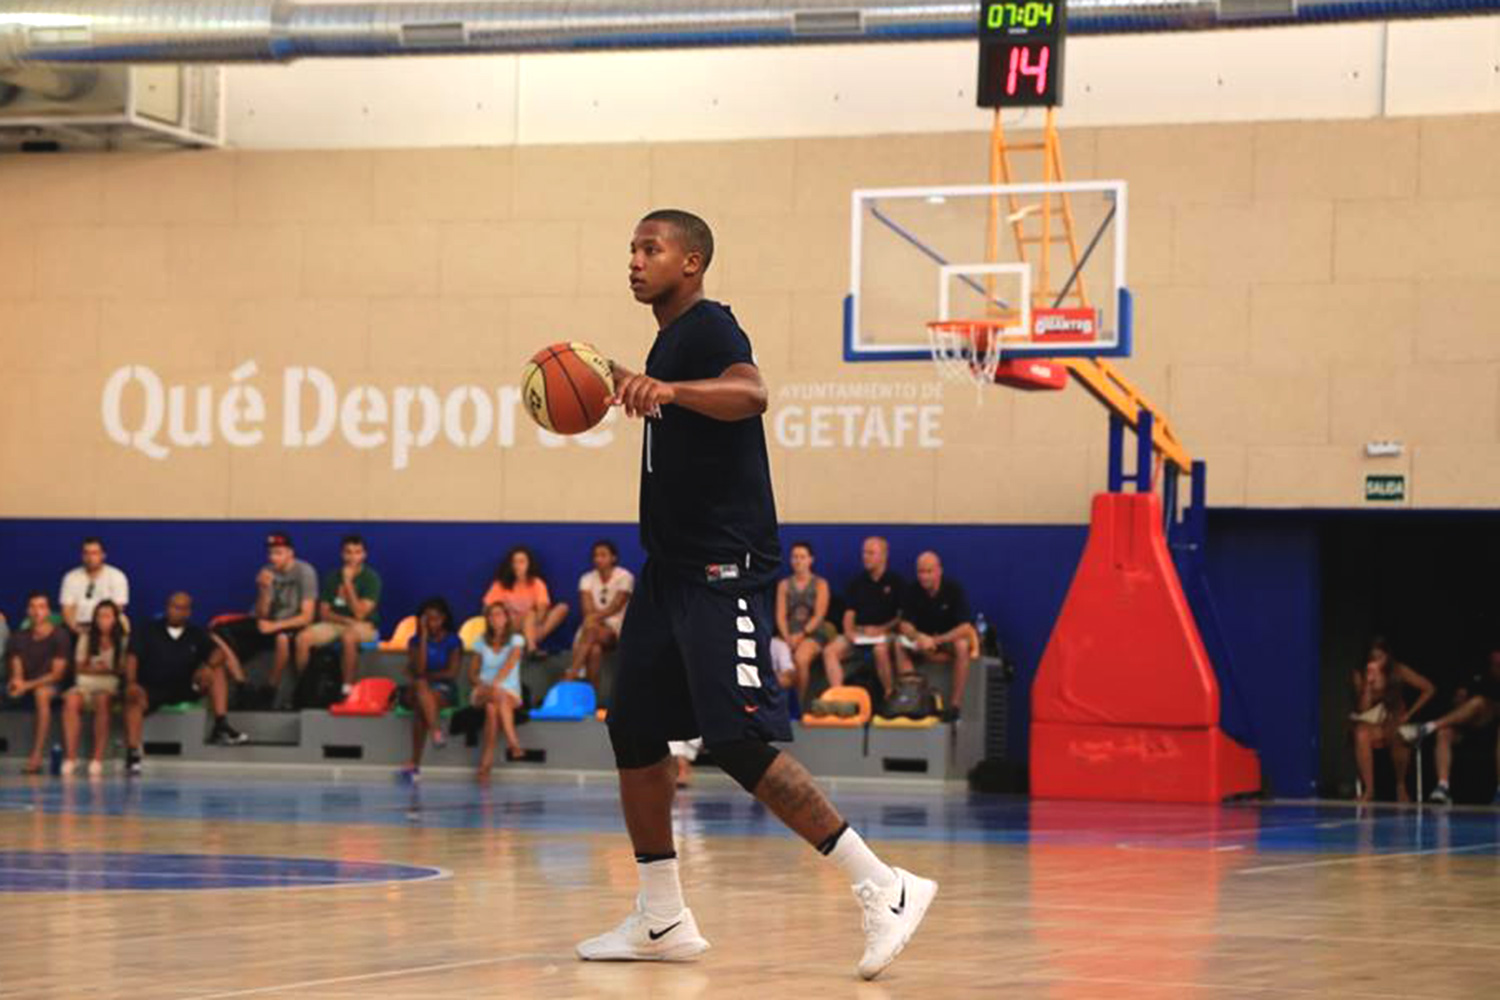 Hall handles the ball during the team's preseason trip to Spain. Coaches are counting on him to be one of the team's leaders.